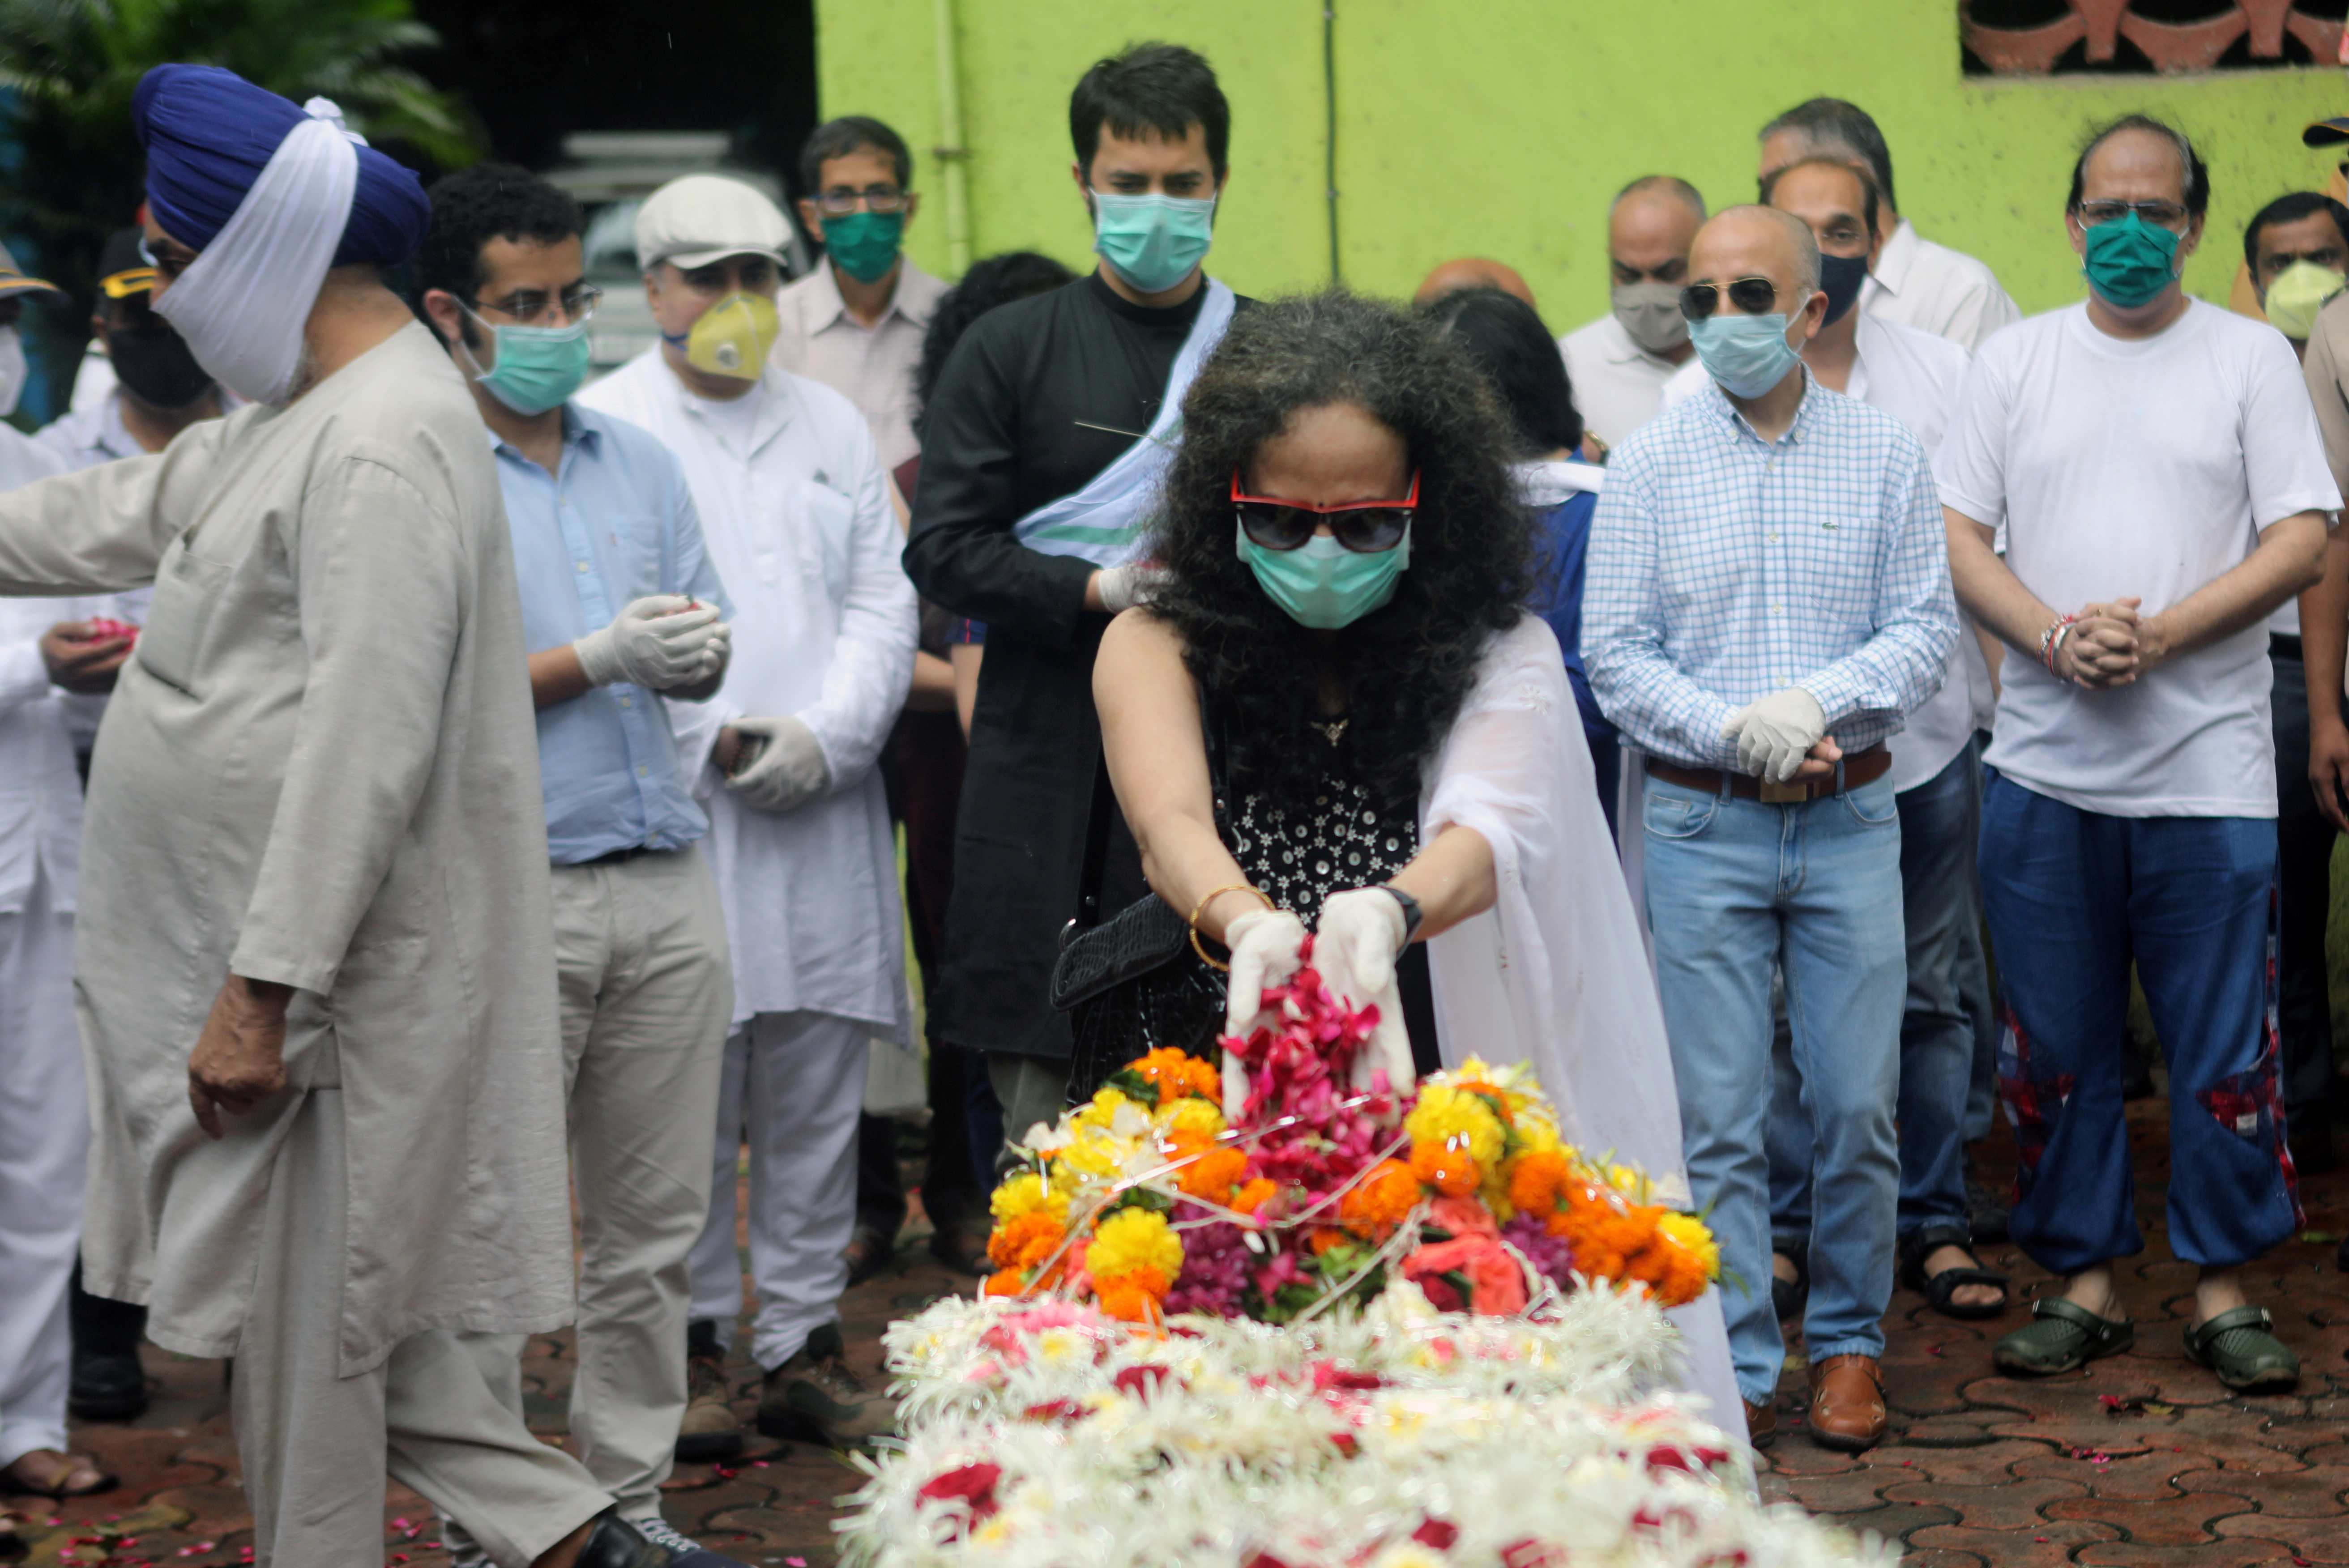 Wife of deceased Air India pilot Deepak Sathe places flowers on his coffin during his funeral in Mumbai, India, August 11, 2020. REUTERS/Francis Mascarenhas/File Photo